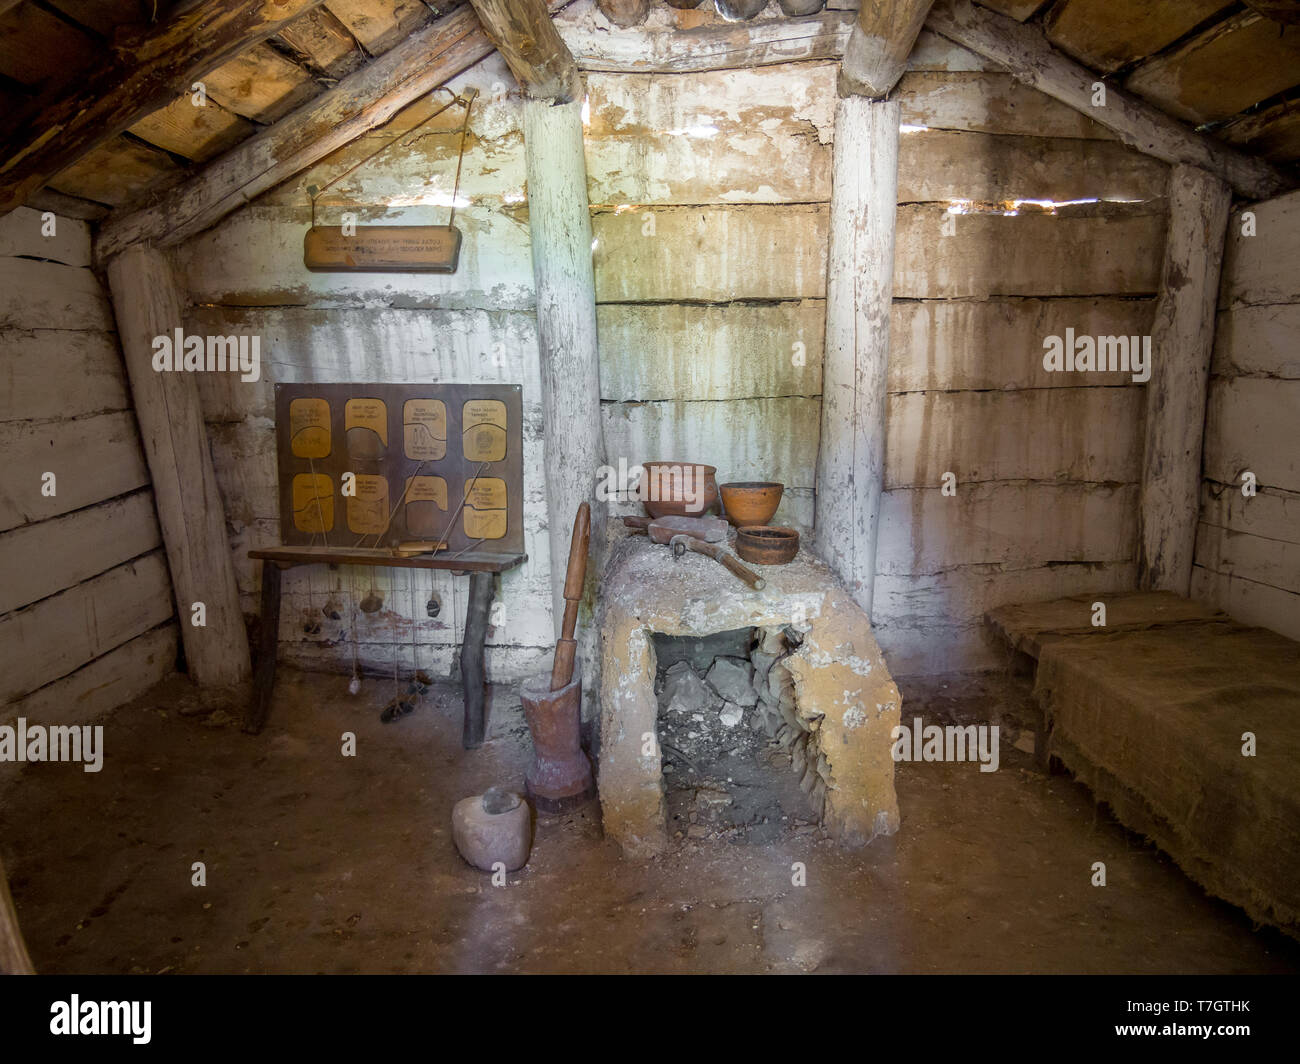 Reconstruction of the interior of the ancient dwelling, archaeological park 'From nomadic to cities', Divnogorye, Voronezh region - Stock Image